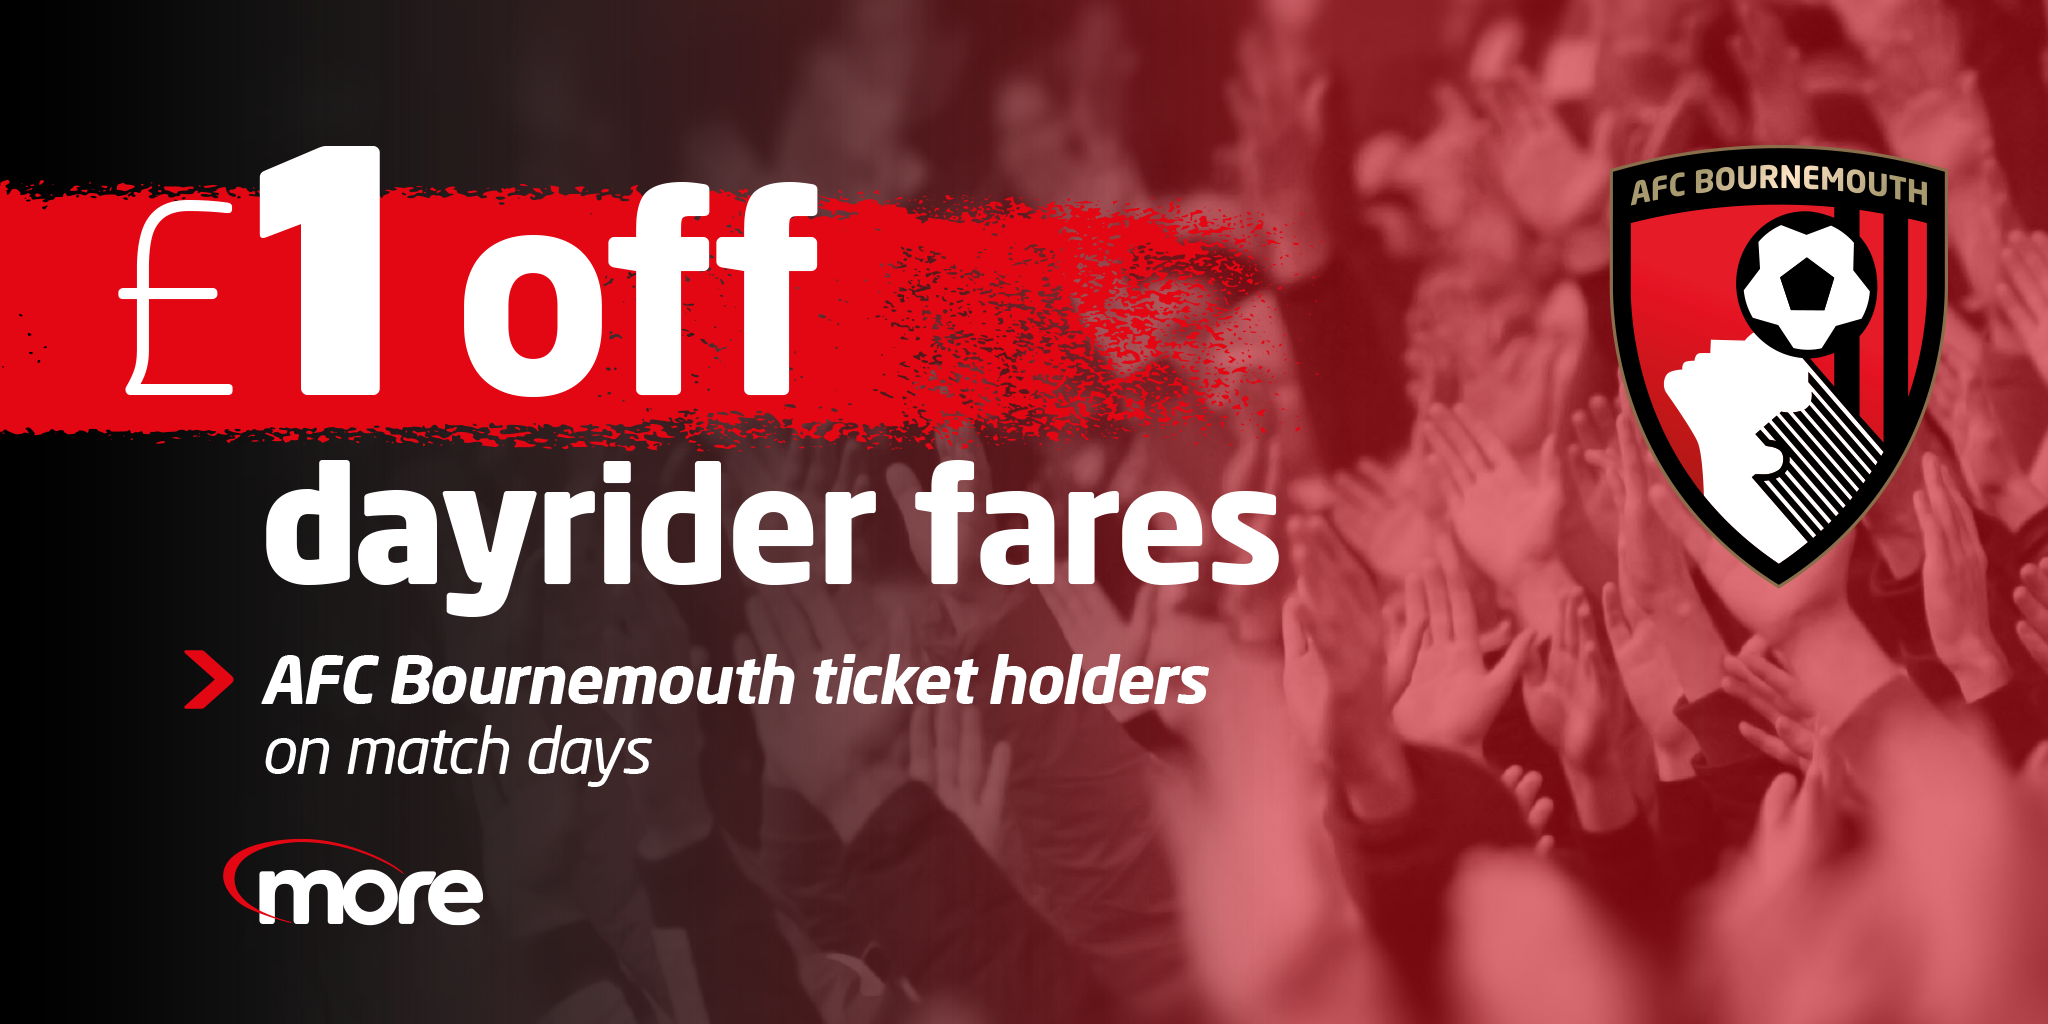 £1 off dayrider fare for AFC bournemouth ticket holders on match days